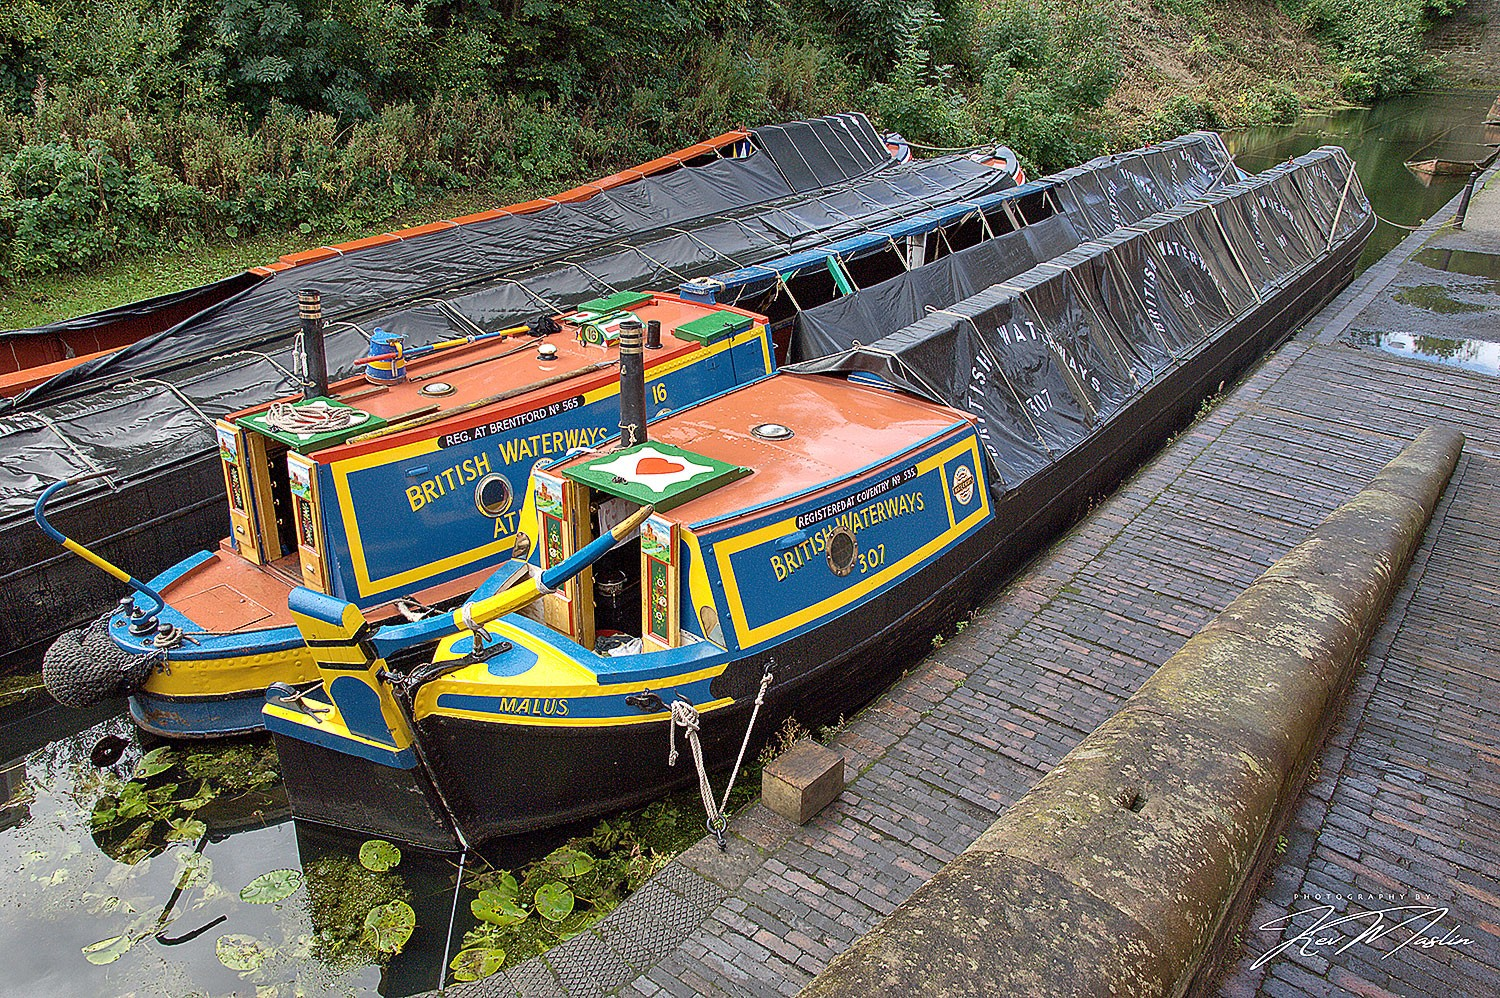 BCBS-owned historic workboat Atlas and Malus